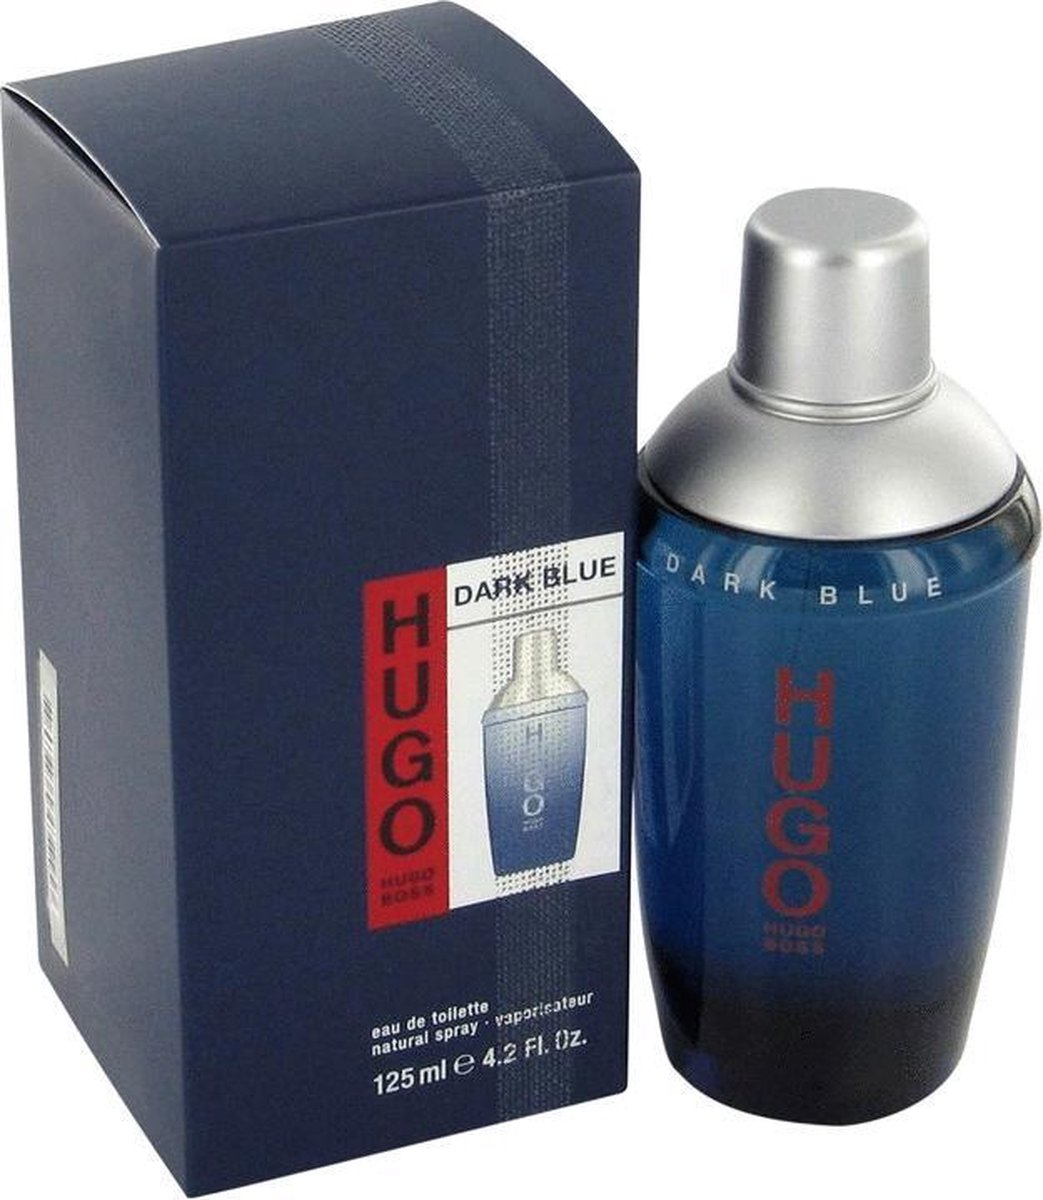 Hugo Boss Dark Blue Man - 125 ml - Eau de toilette